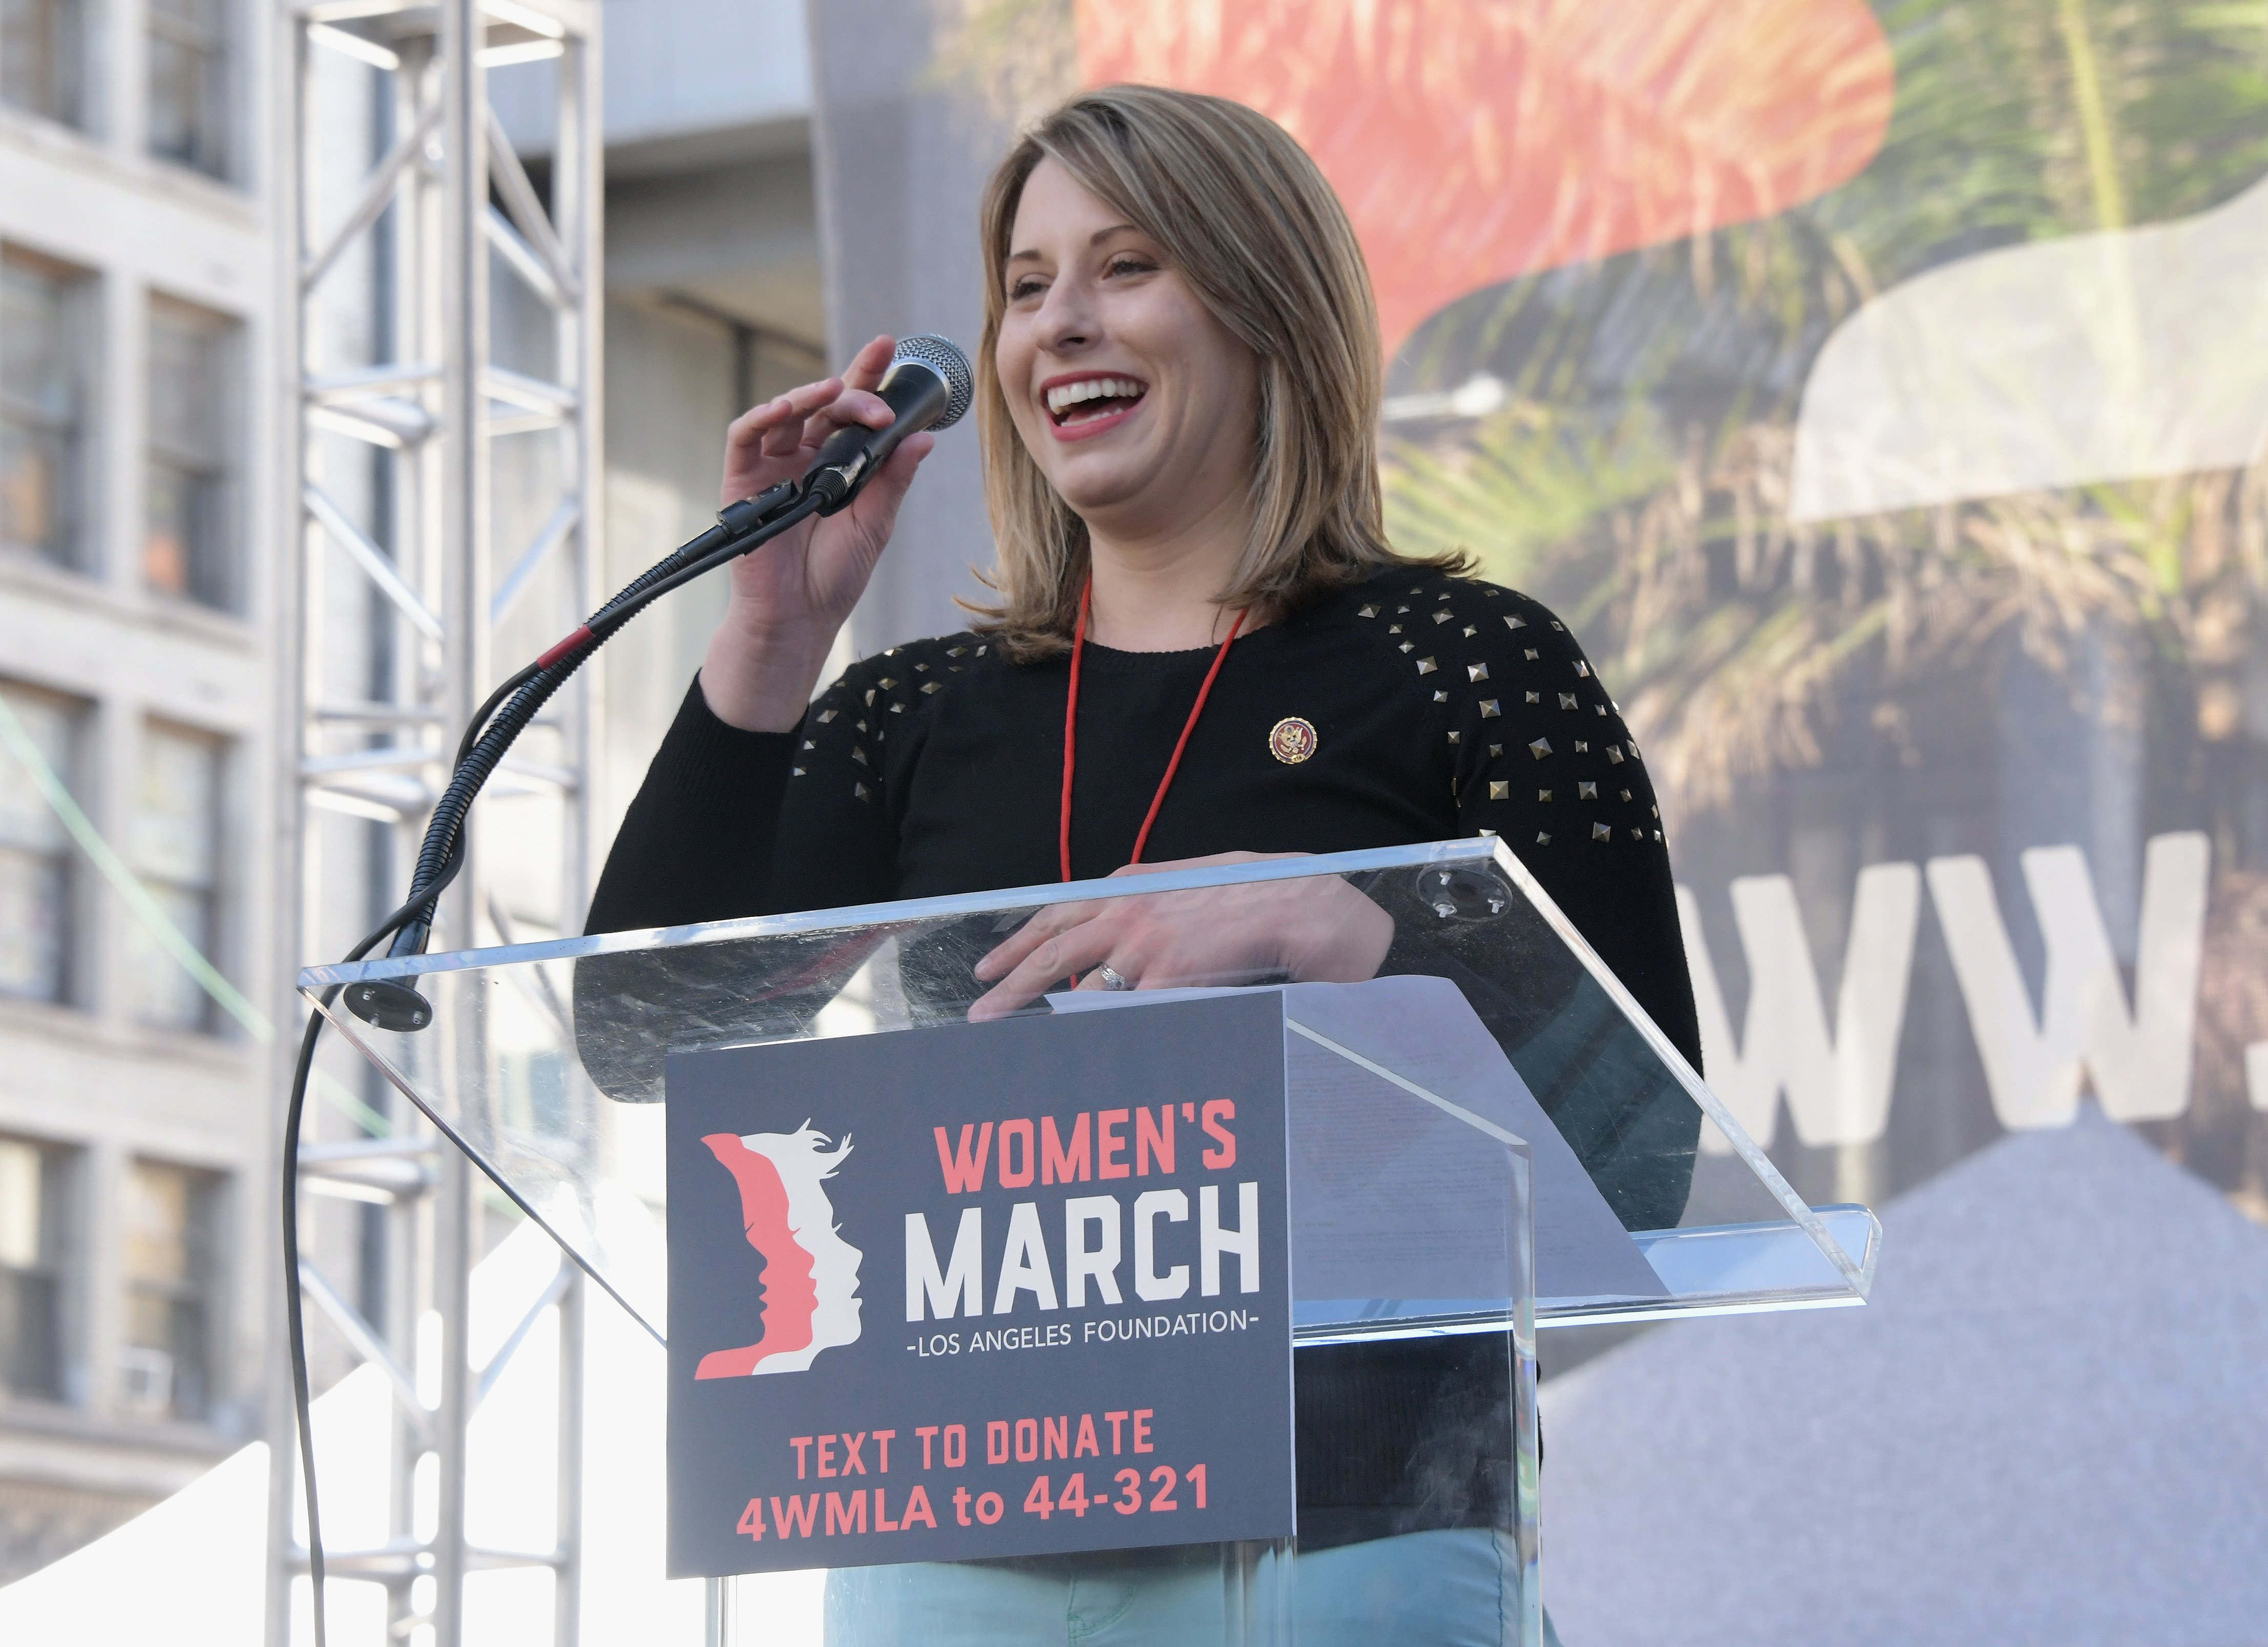 (Araya Diaz/Getty Images for Women's March Los Angeles )